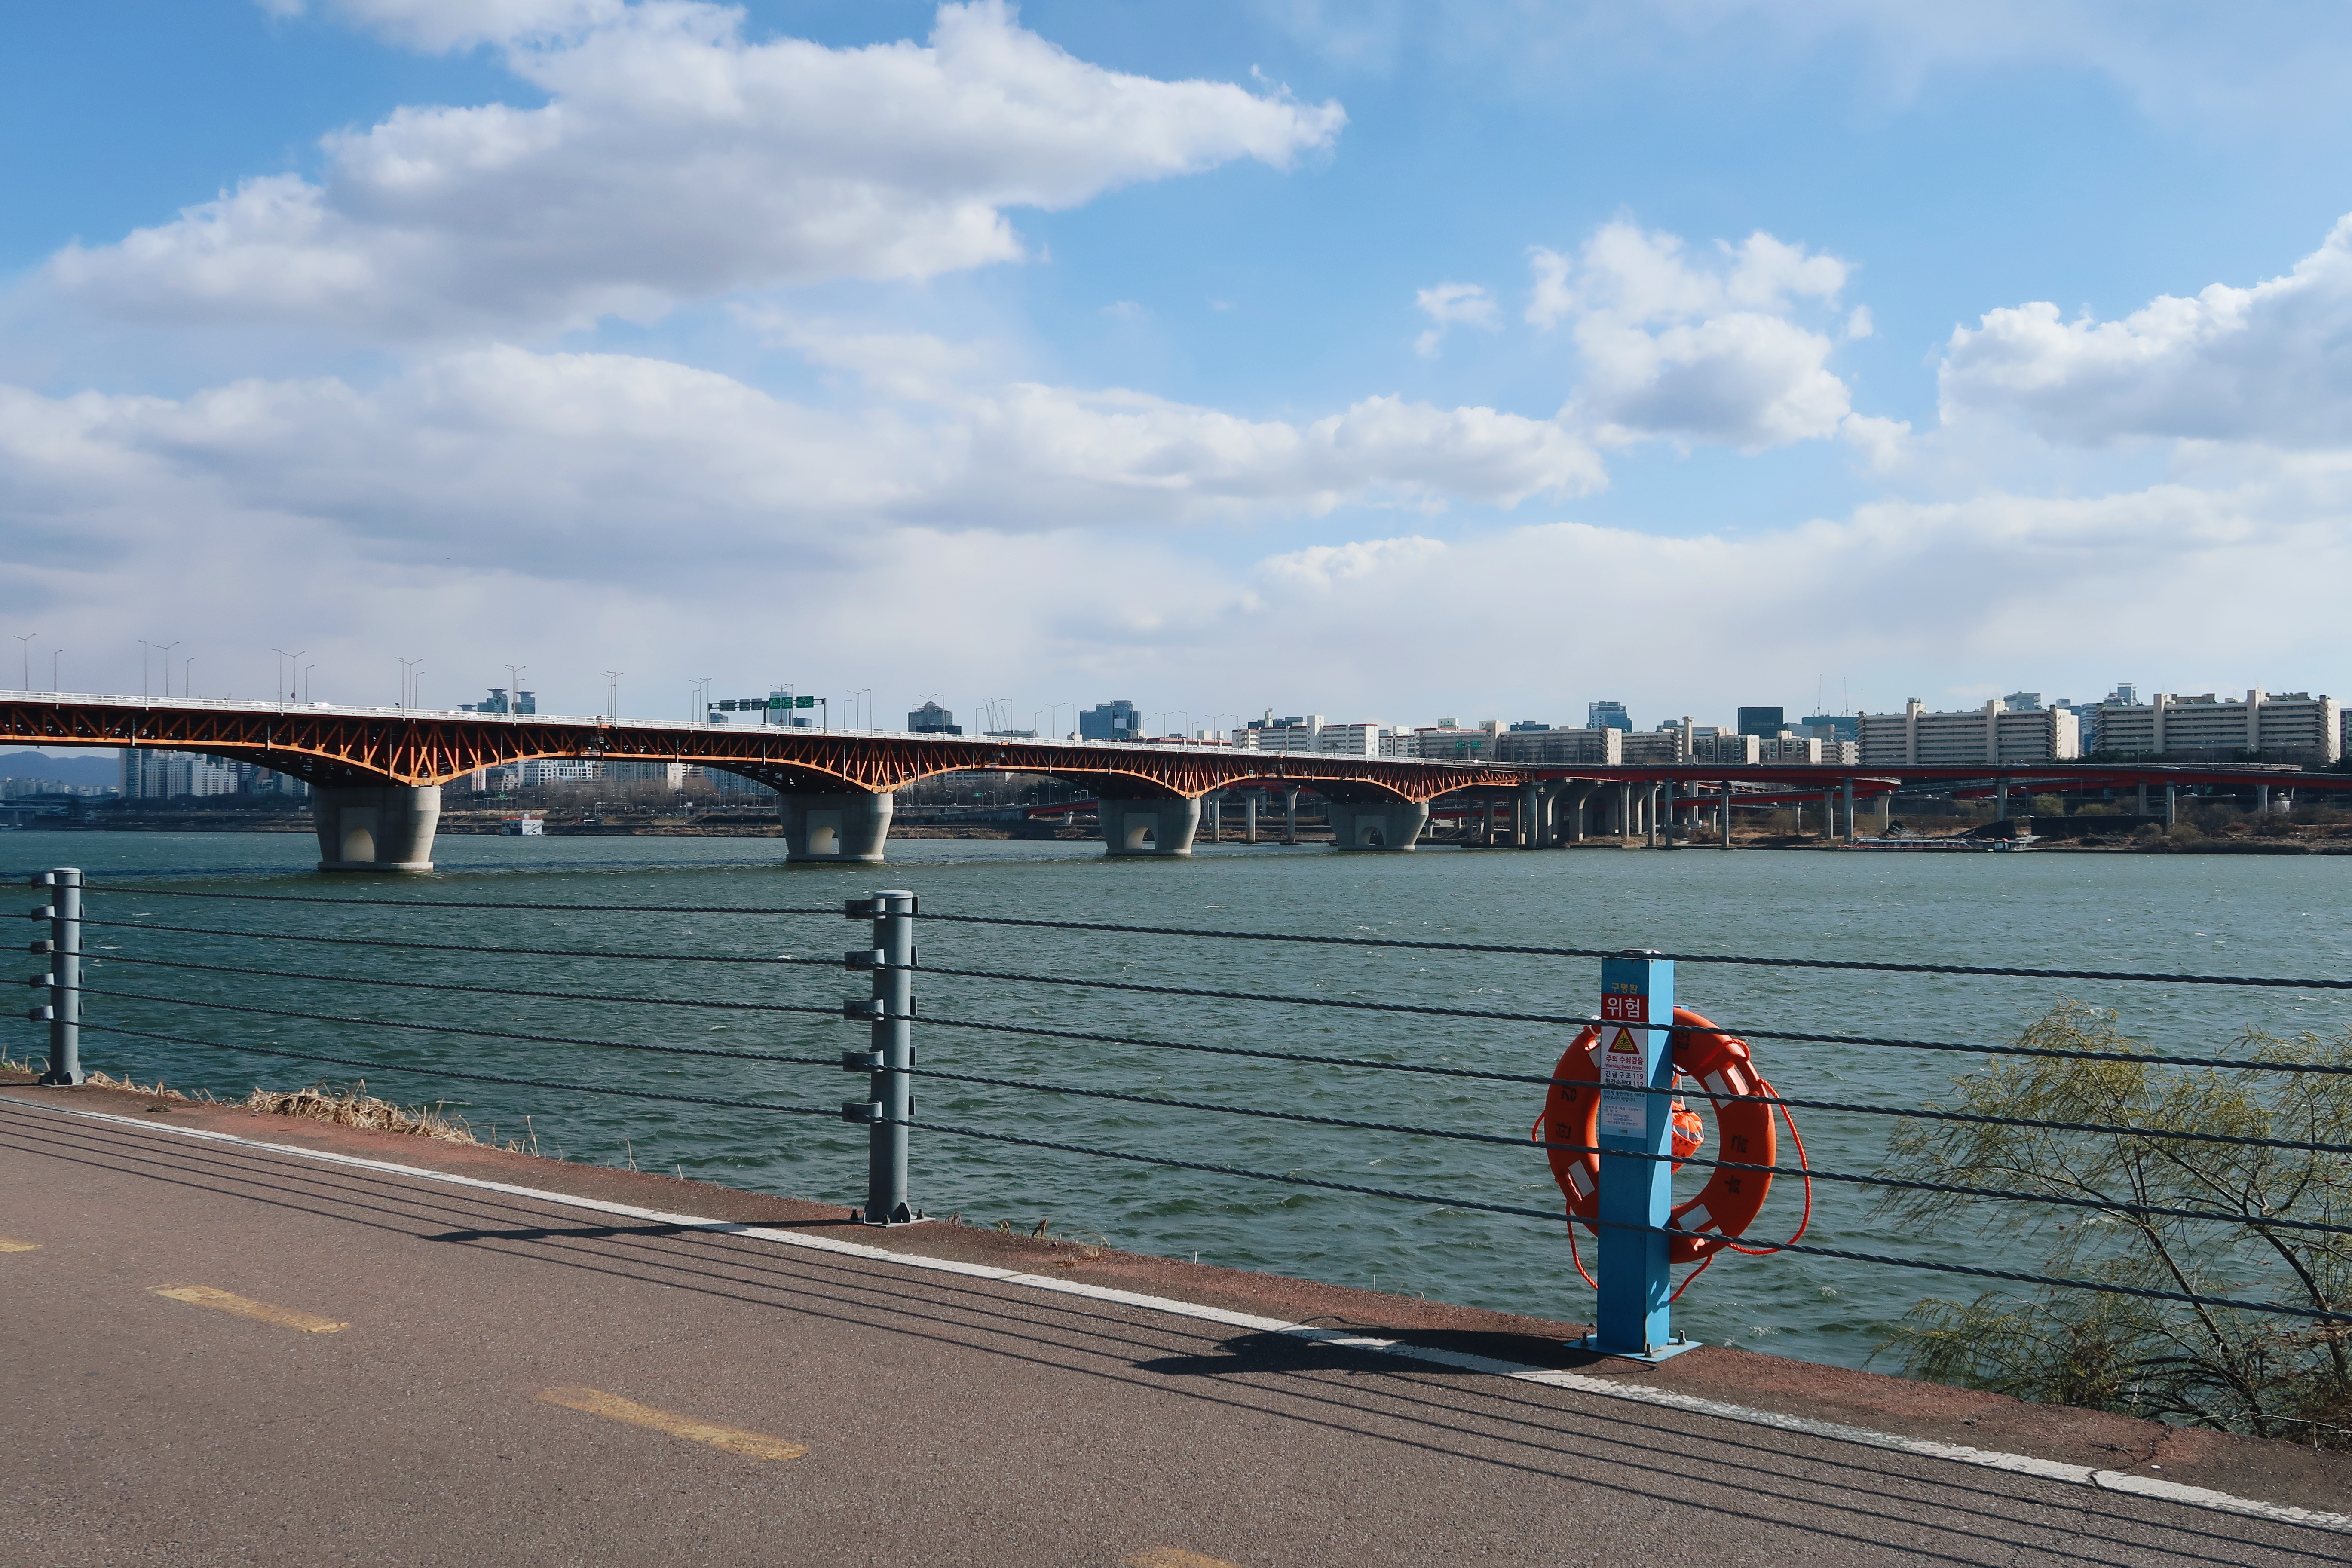 A photo of the Han River with a bridge going from one side to another (Seoul)